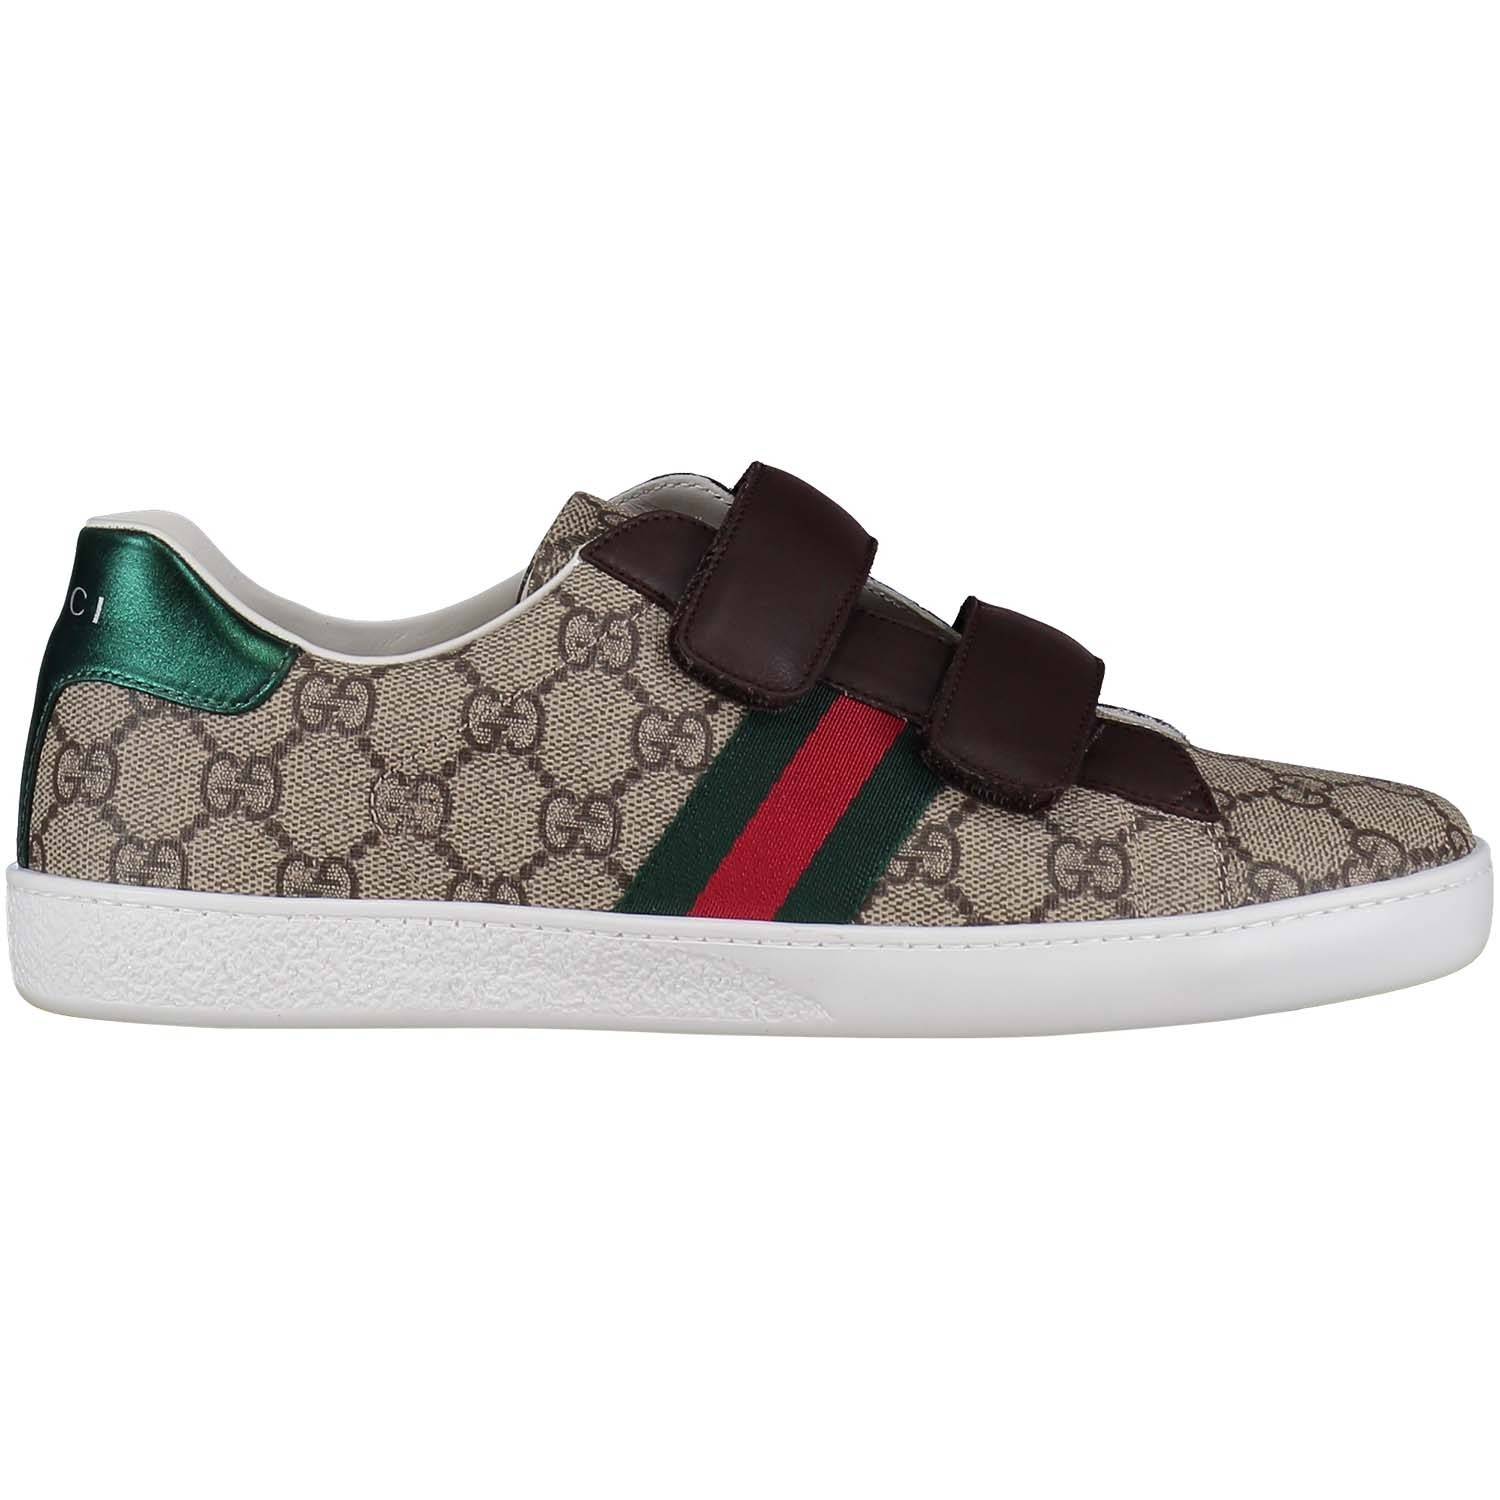 Picture of Gucci 463091 kids sneaker beige